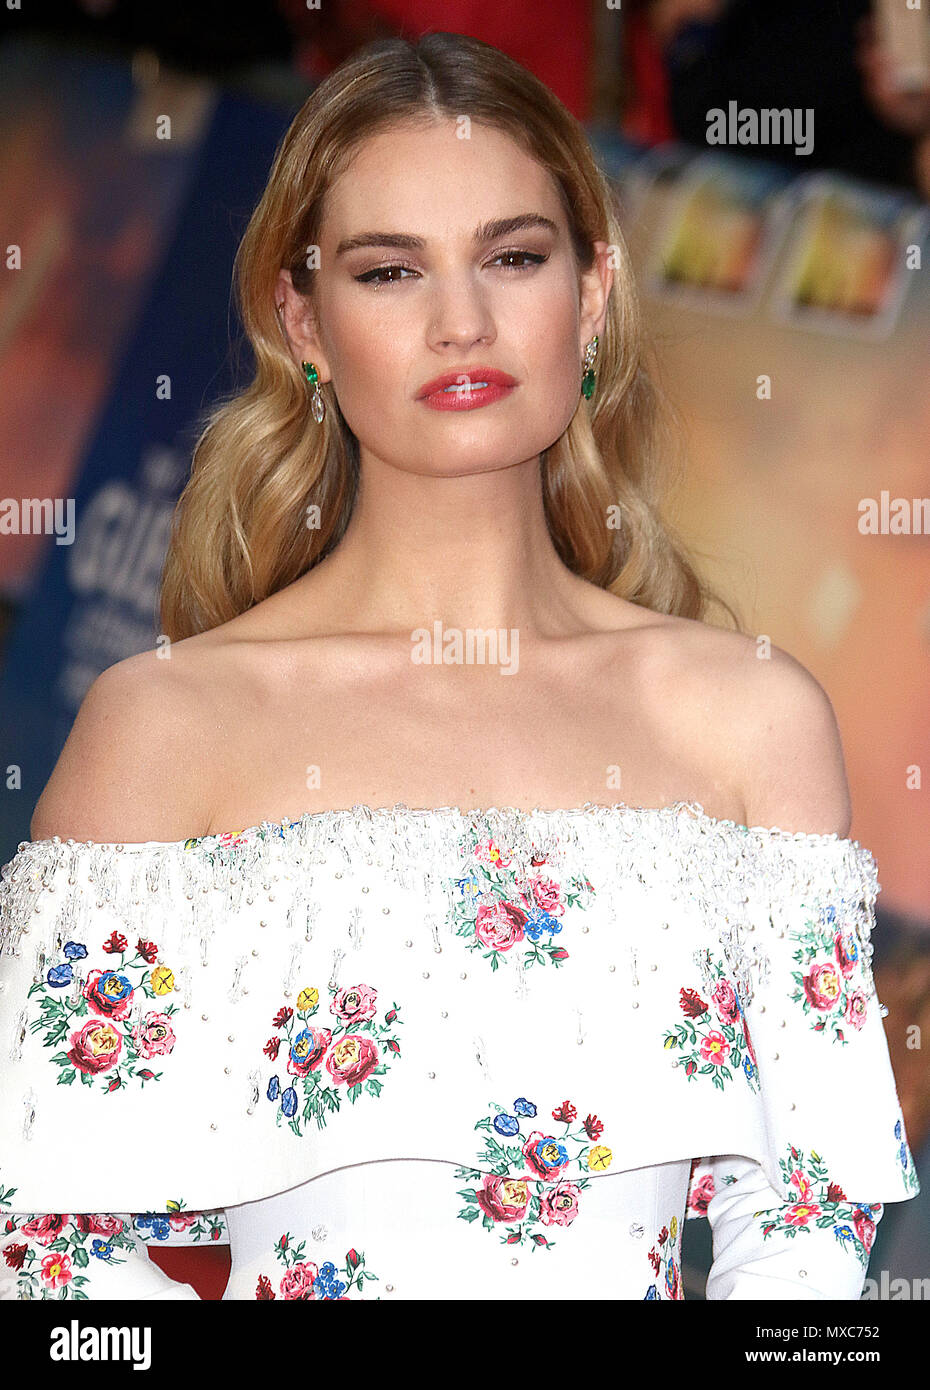 April 09, 2018 - Lily James attending The Guernsey Literary and Potato Peel Pie Society World Premiere, Curzon Mayfair in London, England, UK Stock Photo